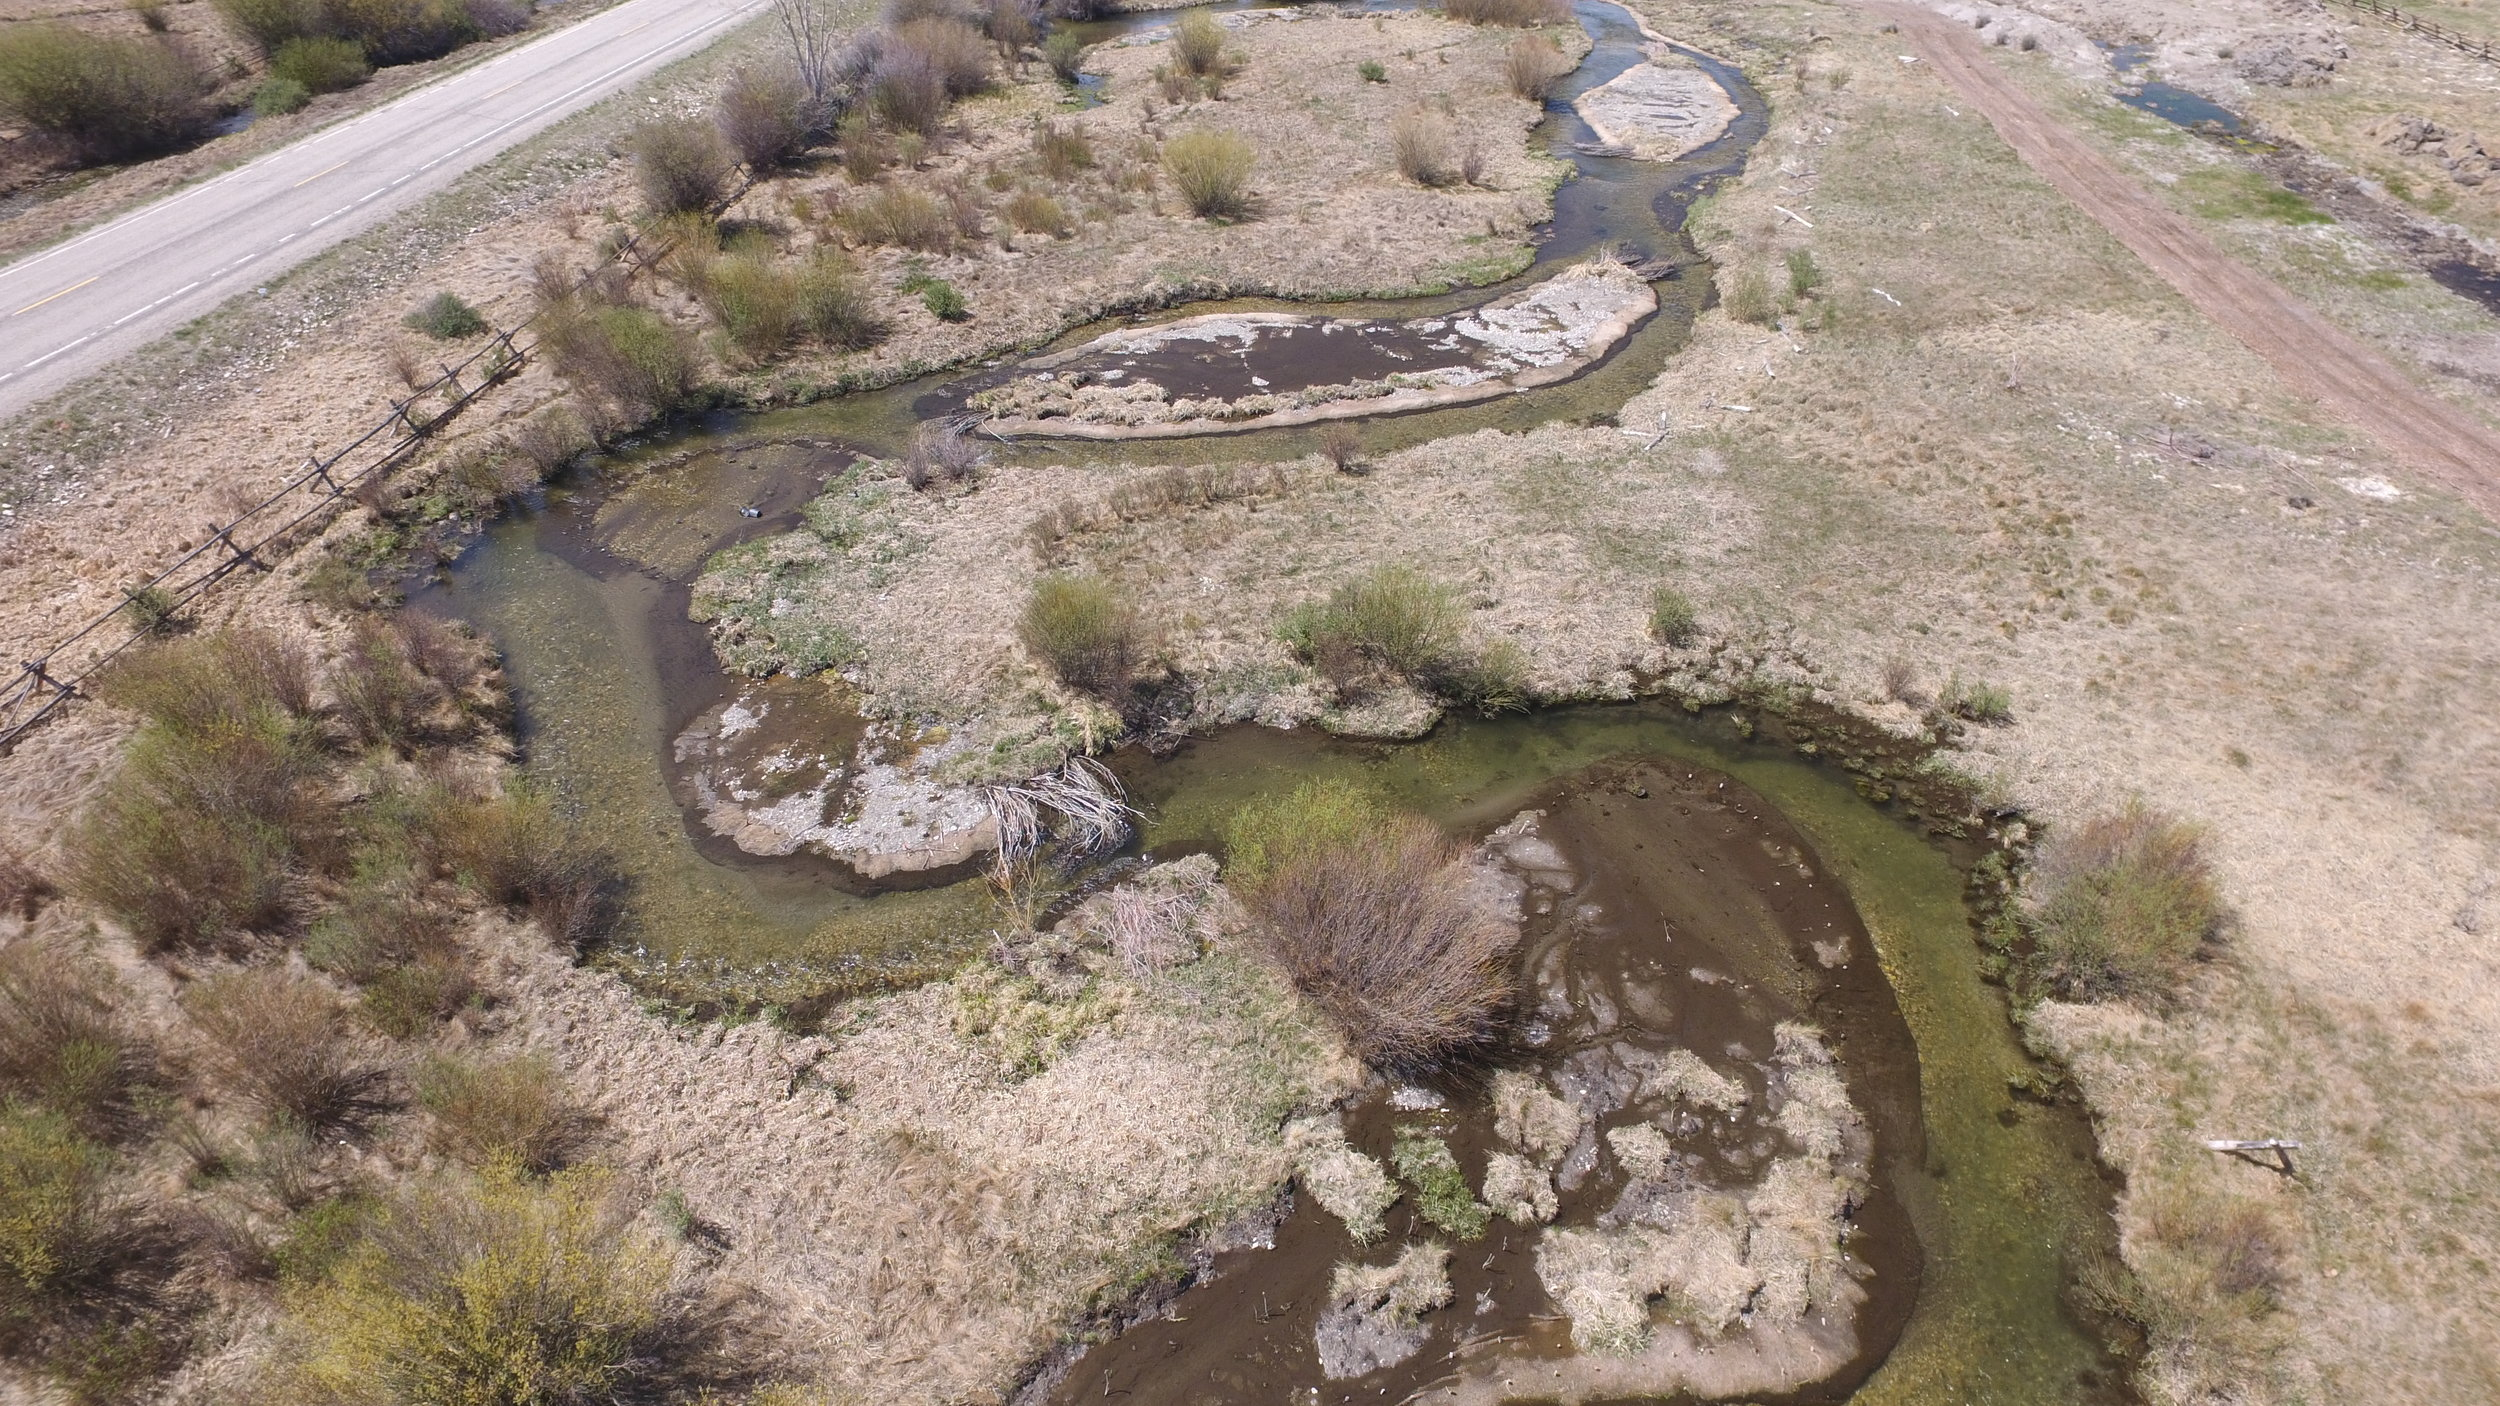 Project Highlights - · Relocated stream segments to utilize existing native vegetation to create immediate increases in shade conditions· Created channel constrictions to allow the channel to scour pools and deepen the channel· Utilized a diversity of treatment types to enable comparison and evaluation of best practices for future projects